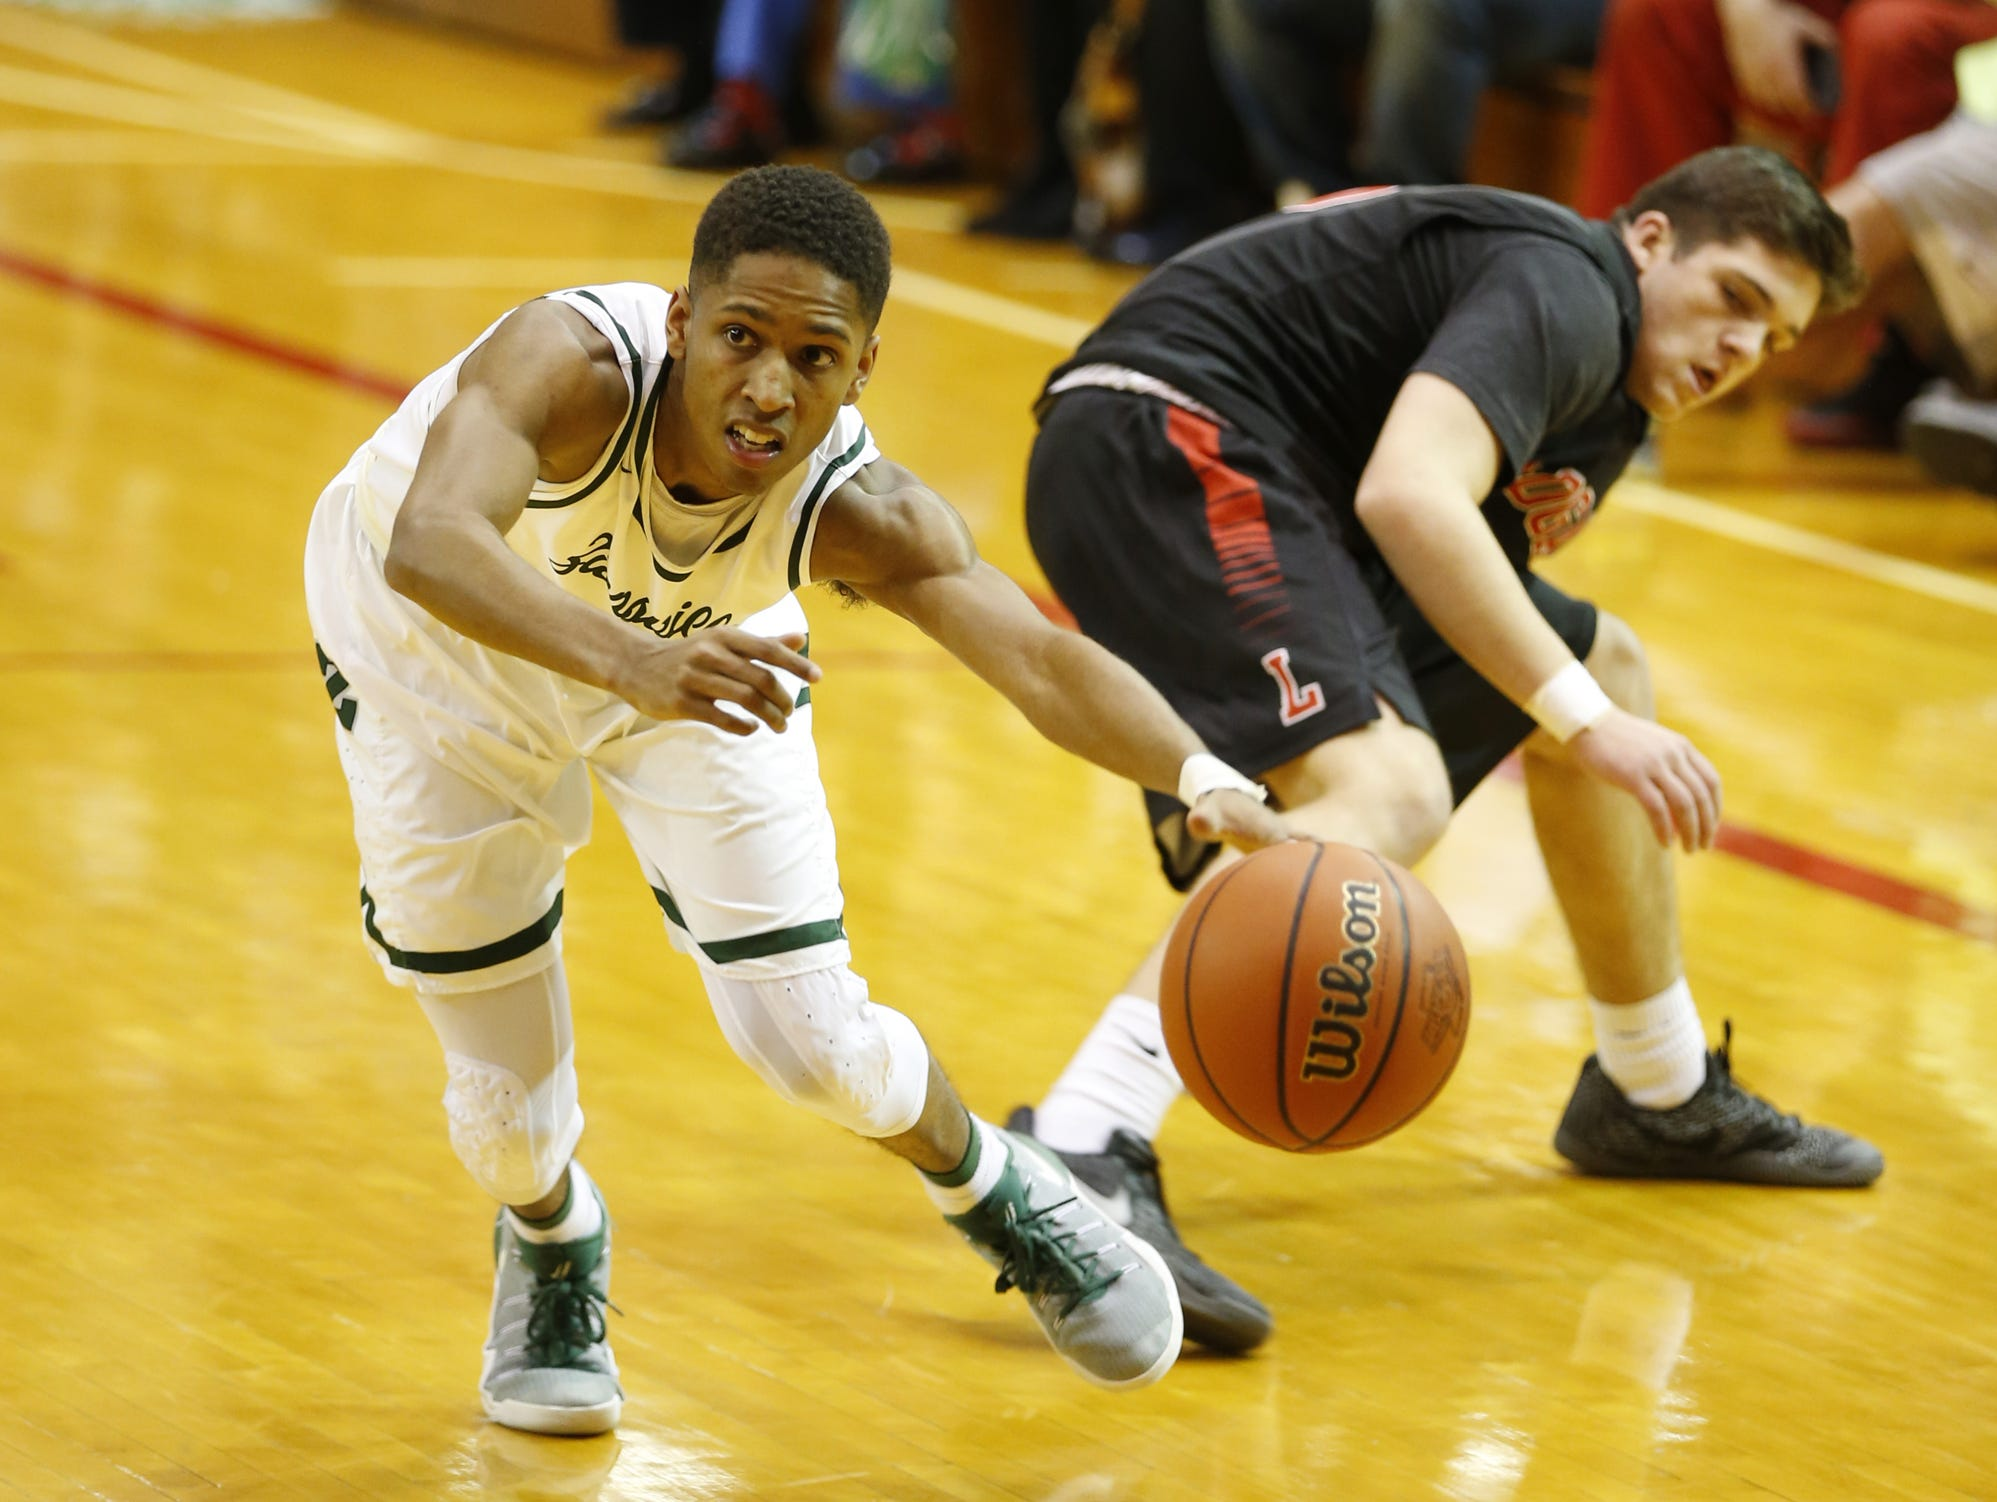 Isaiah Thompson of Zionsville gets around Jack Skaggs of Logansport Friday, March 3, 2017, in the Boys Basketball Sectional at Lafayette Jefferson High School in Lafayette.